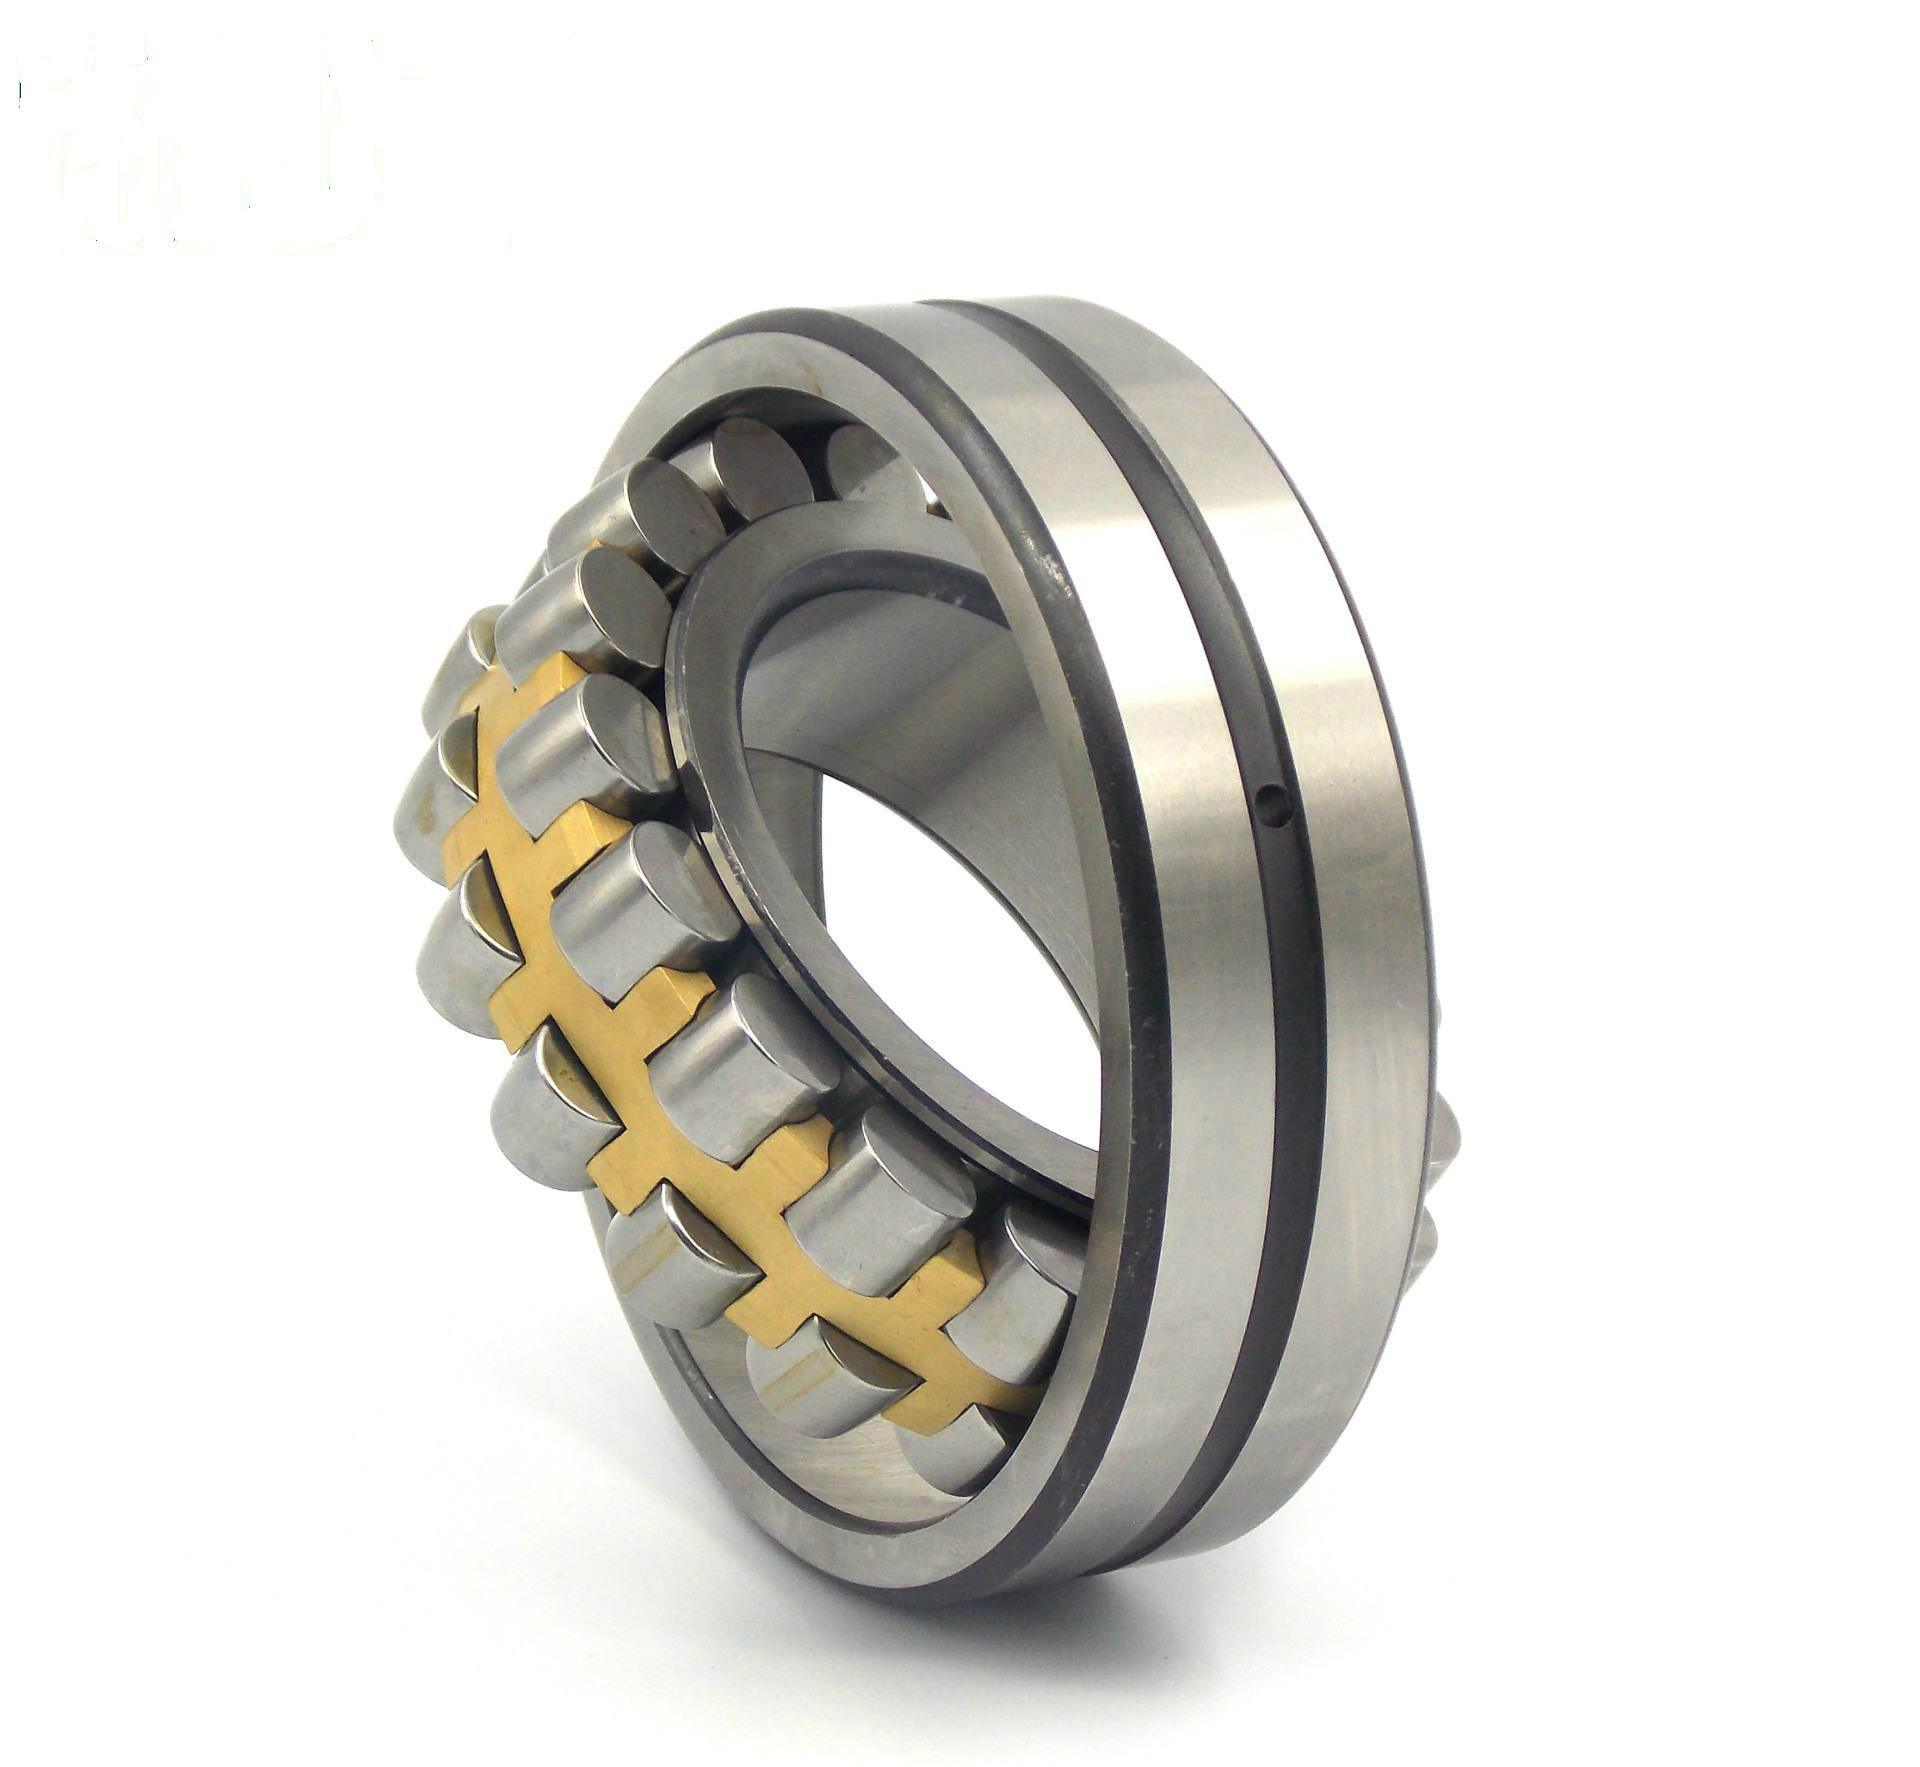 NU 2222 ML Cylindrical roller bearing